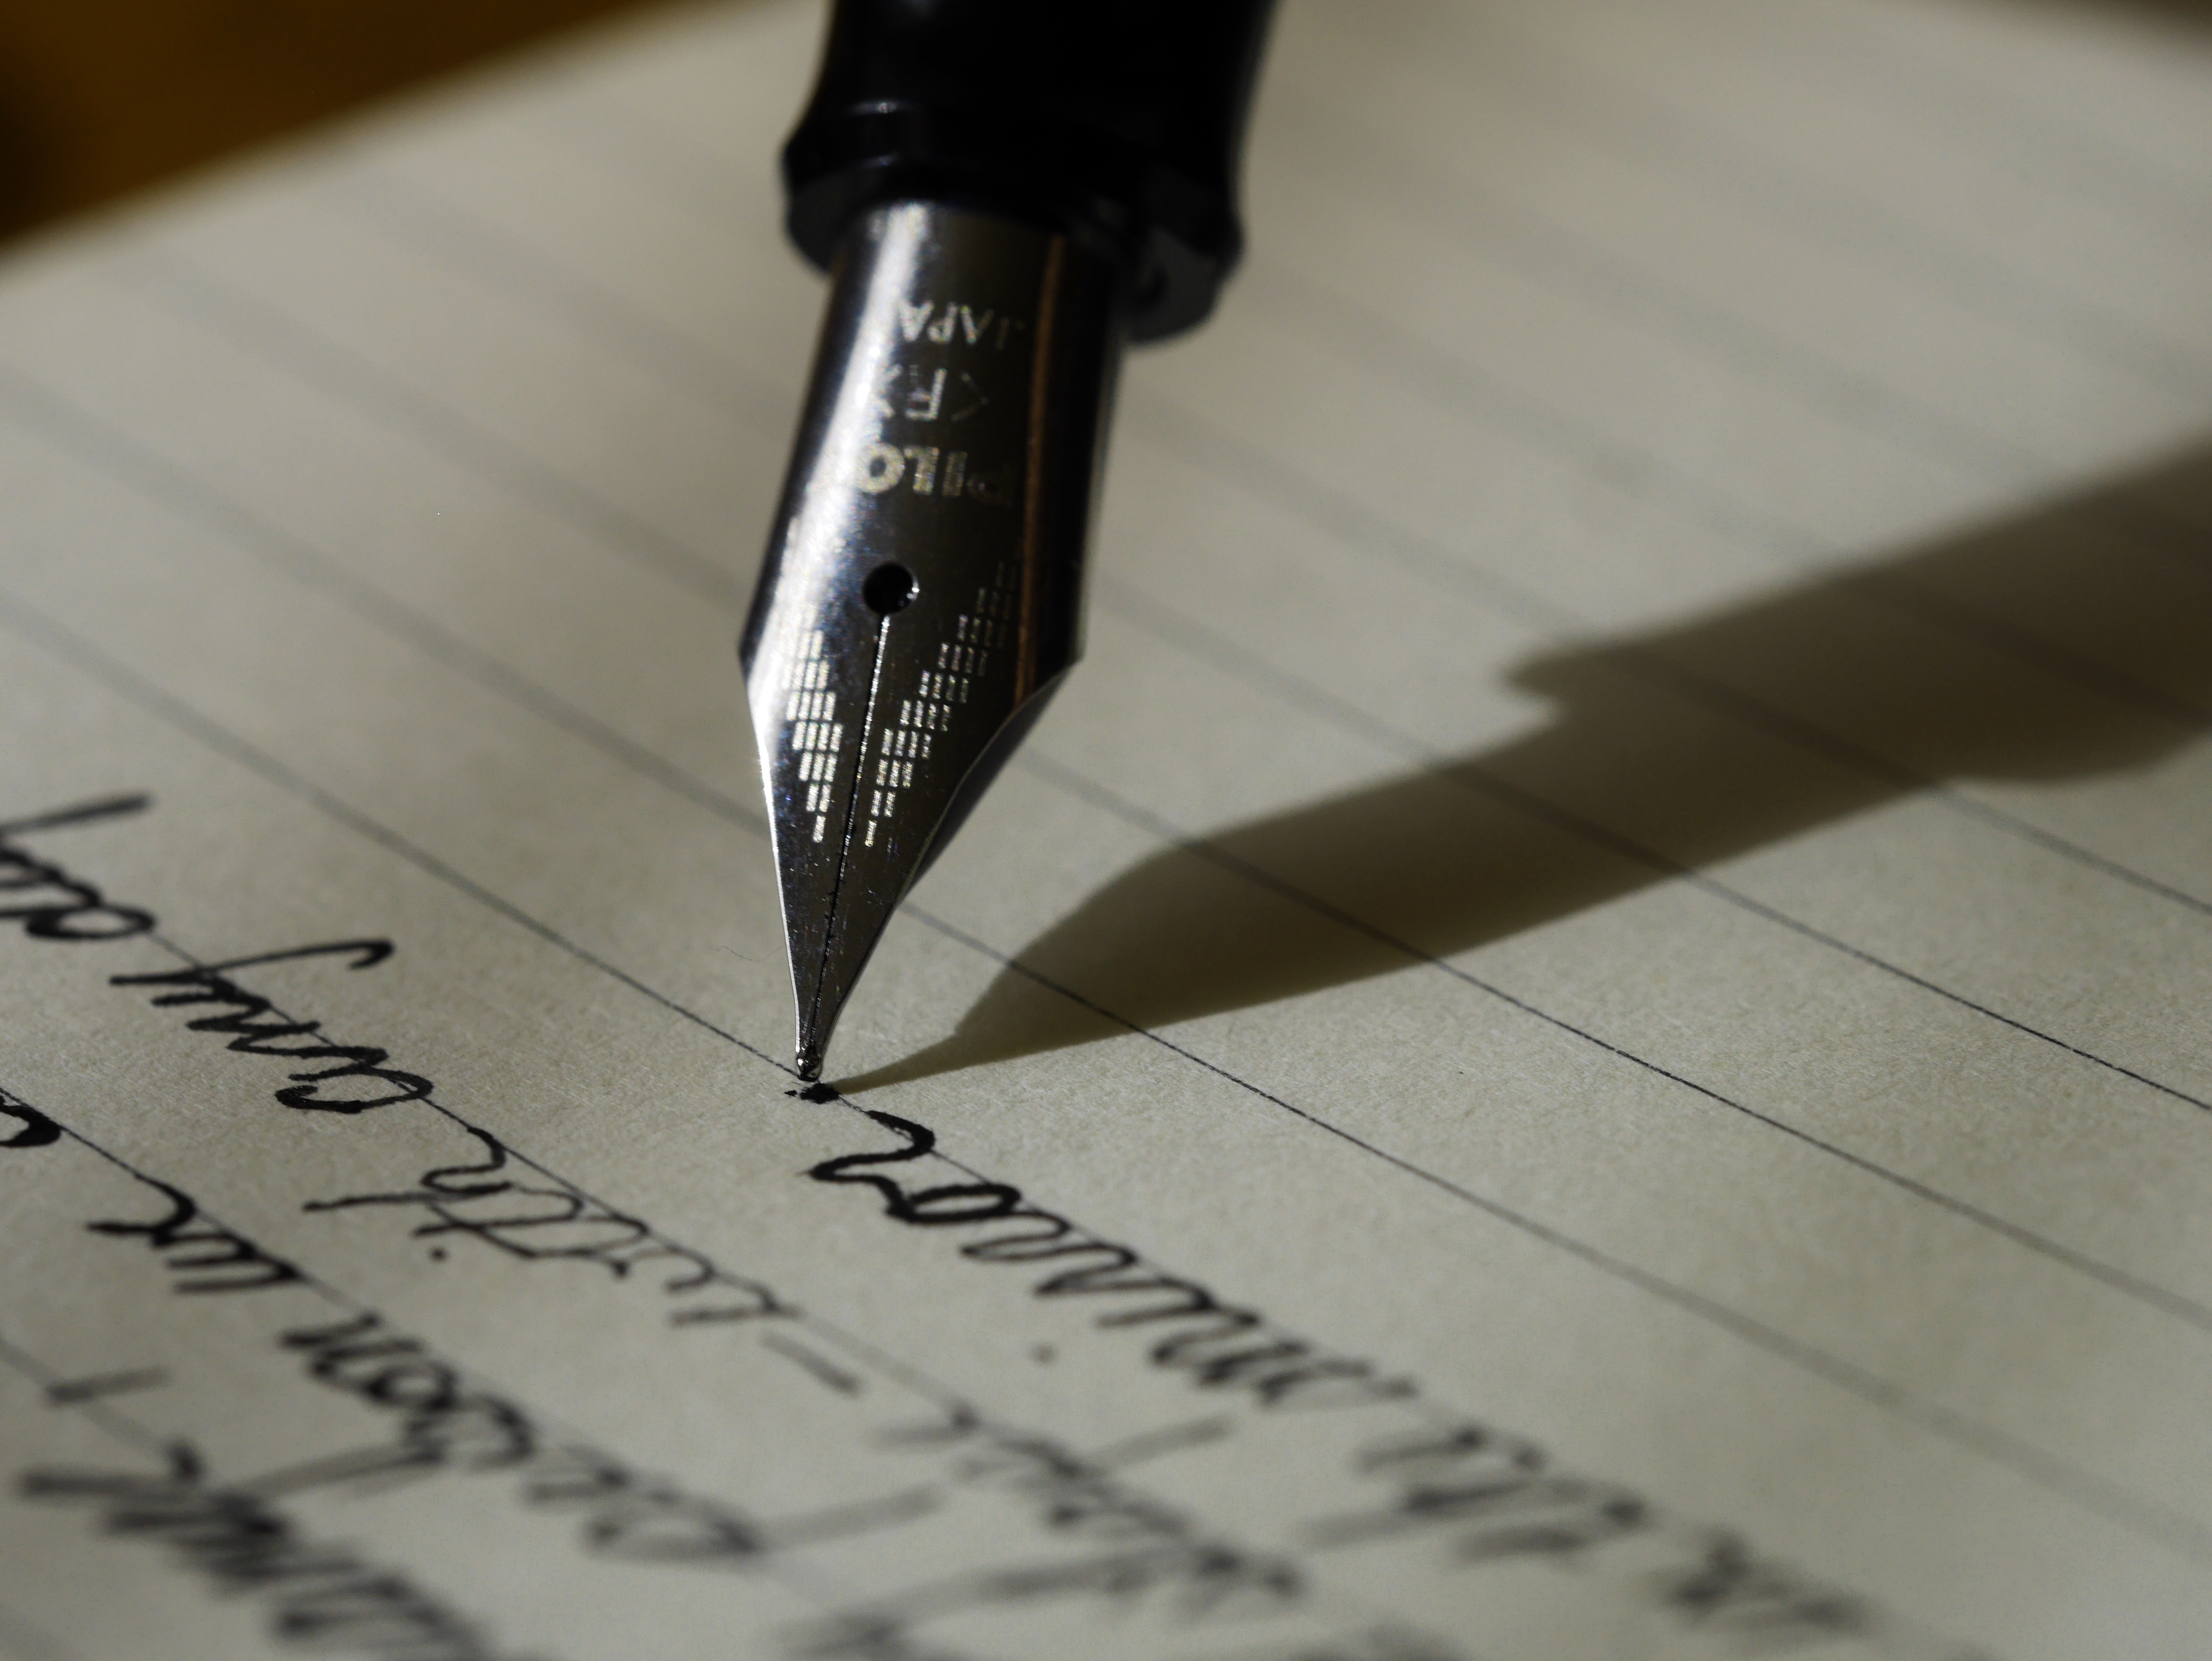 Close-up view of a pen writing on lined paper